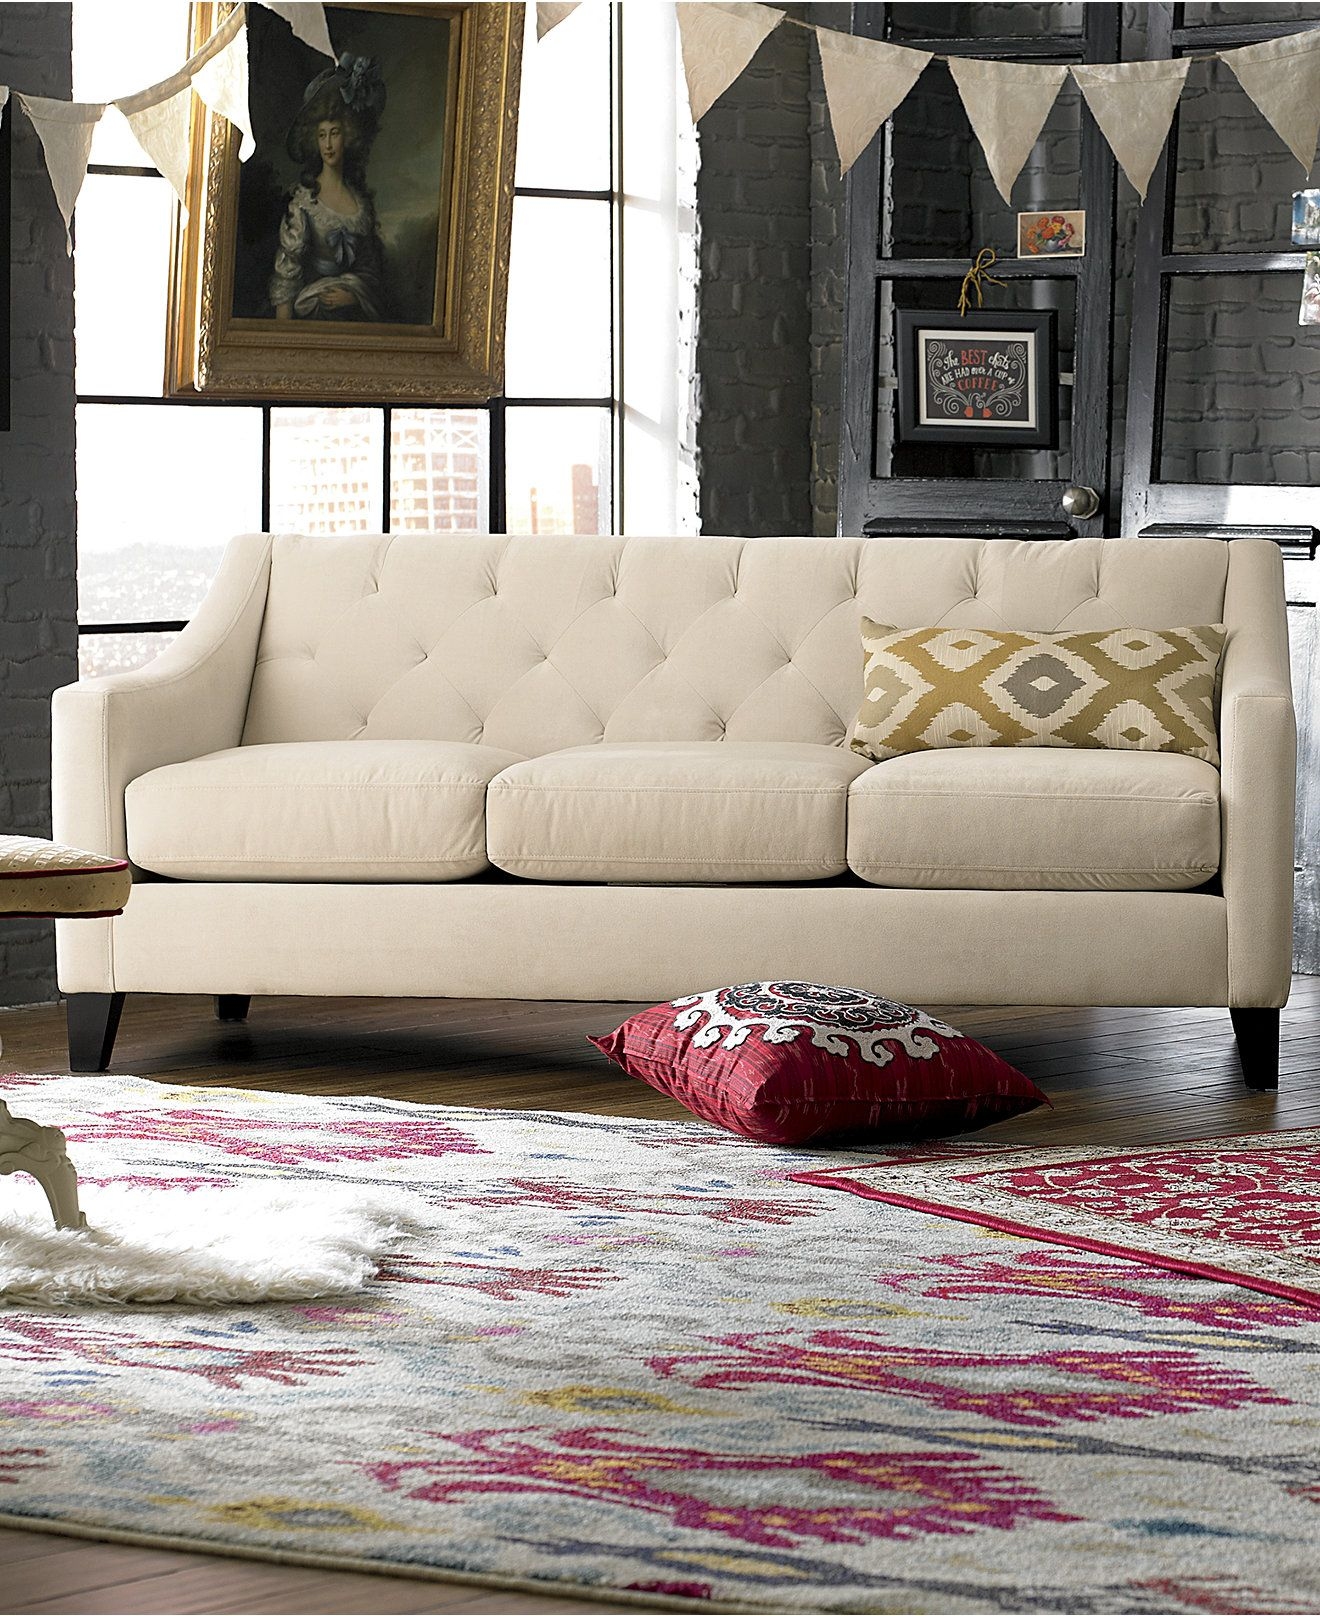 Living Room Sets For Apartments chloe velvet tufted sofa living room furniture collection - custom